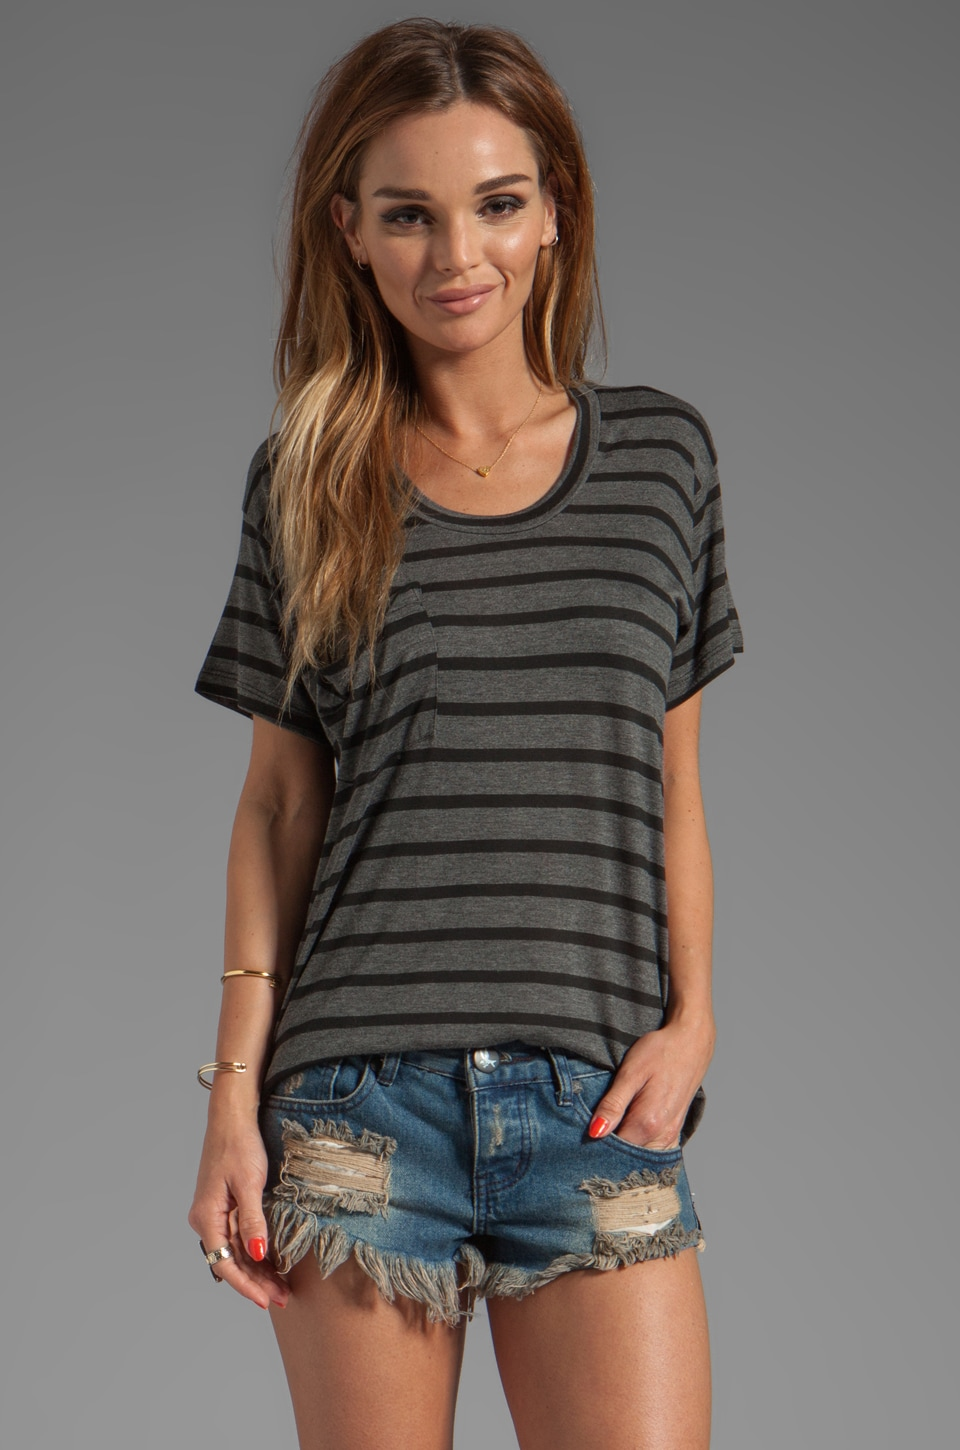 Kain Sheer Jersey Classic Pocket Tee in Black/Charcoal Stripe